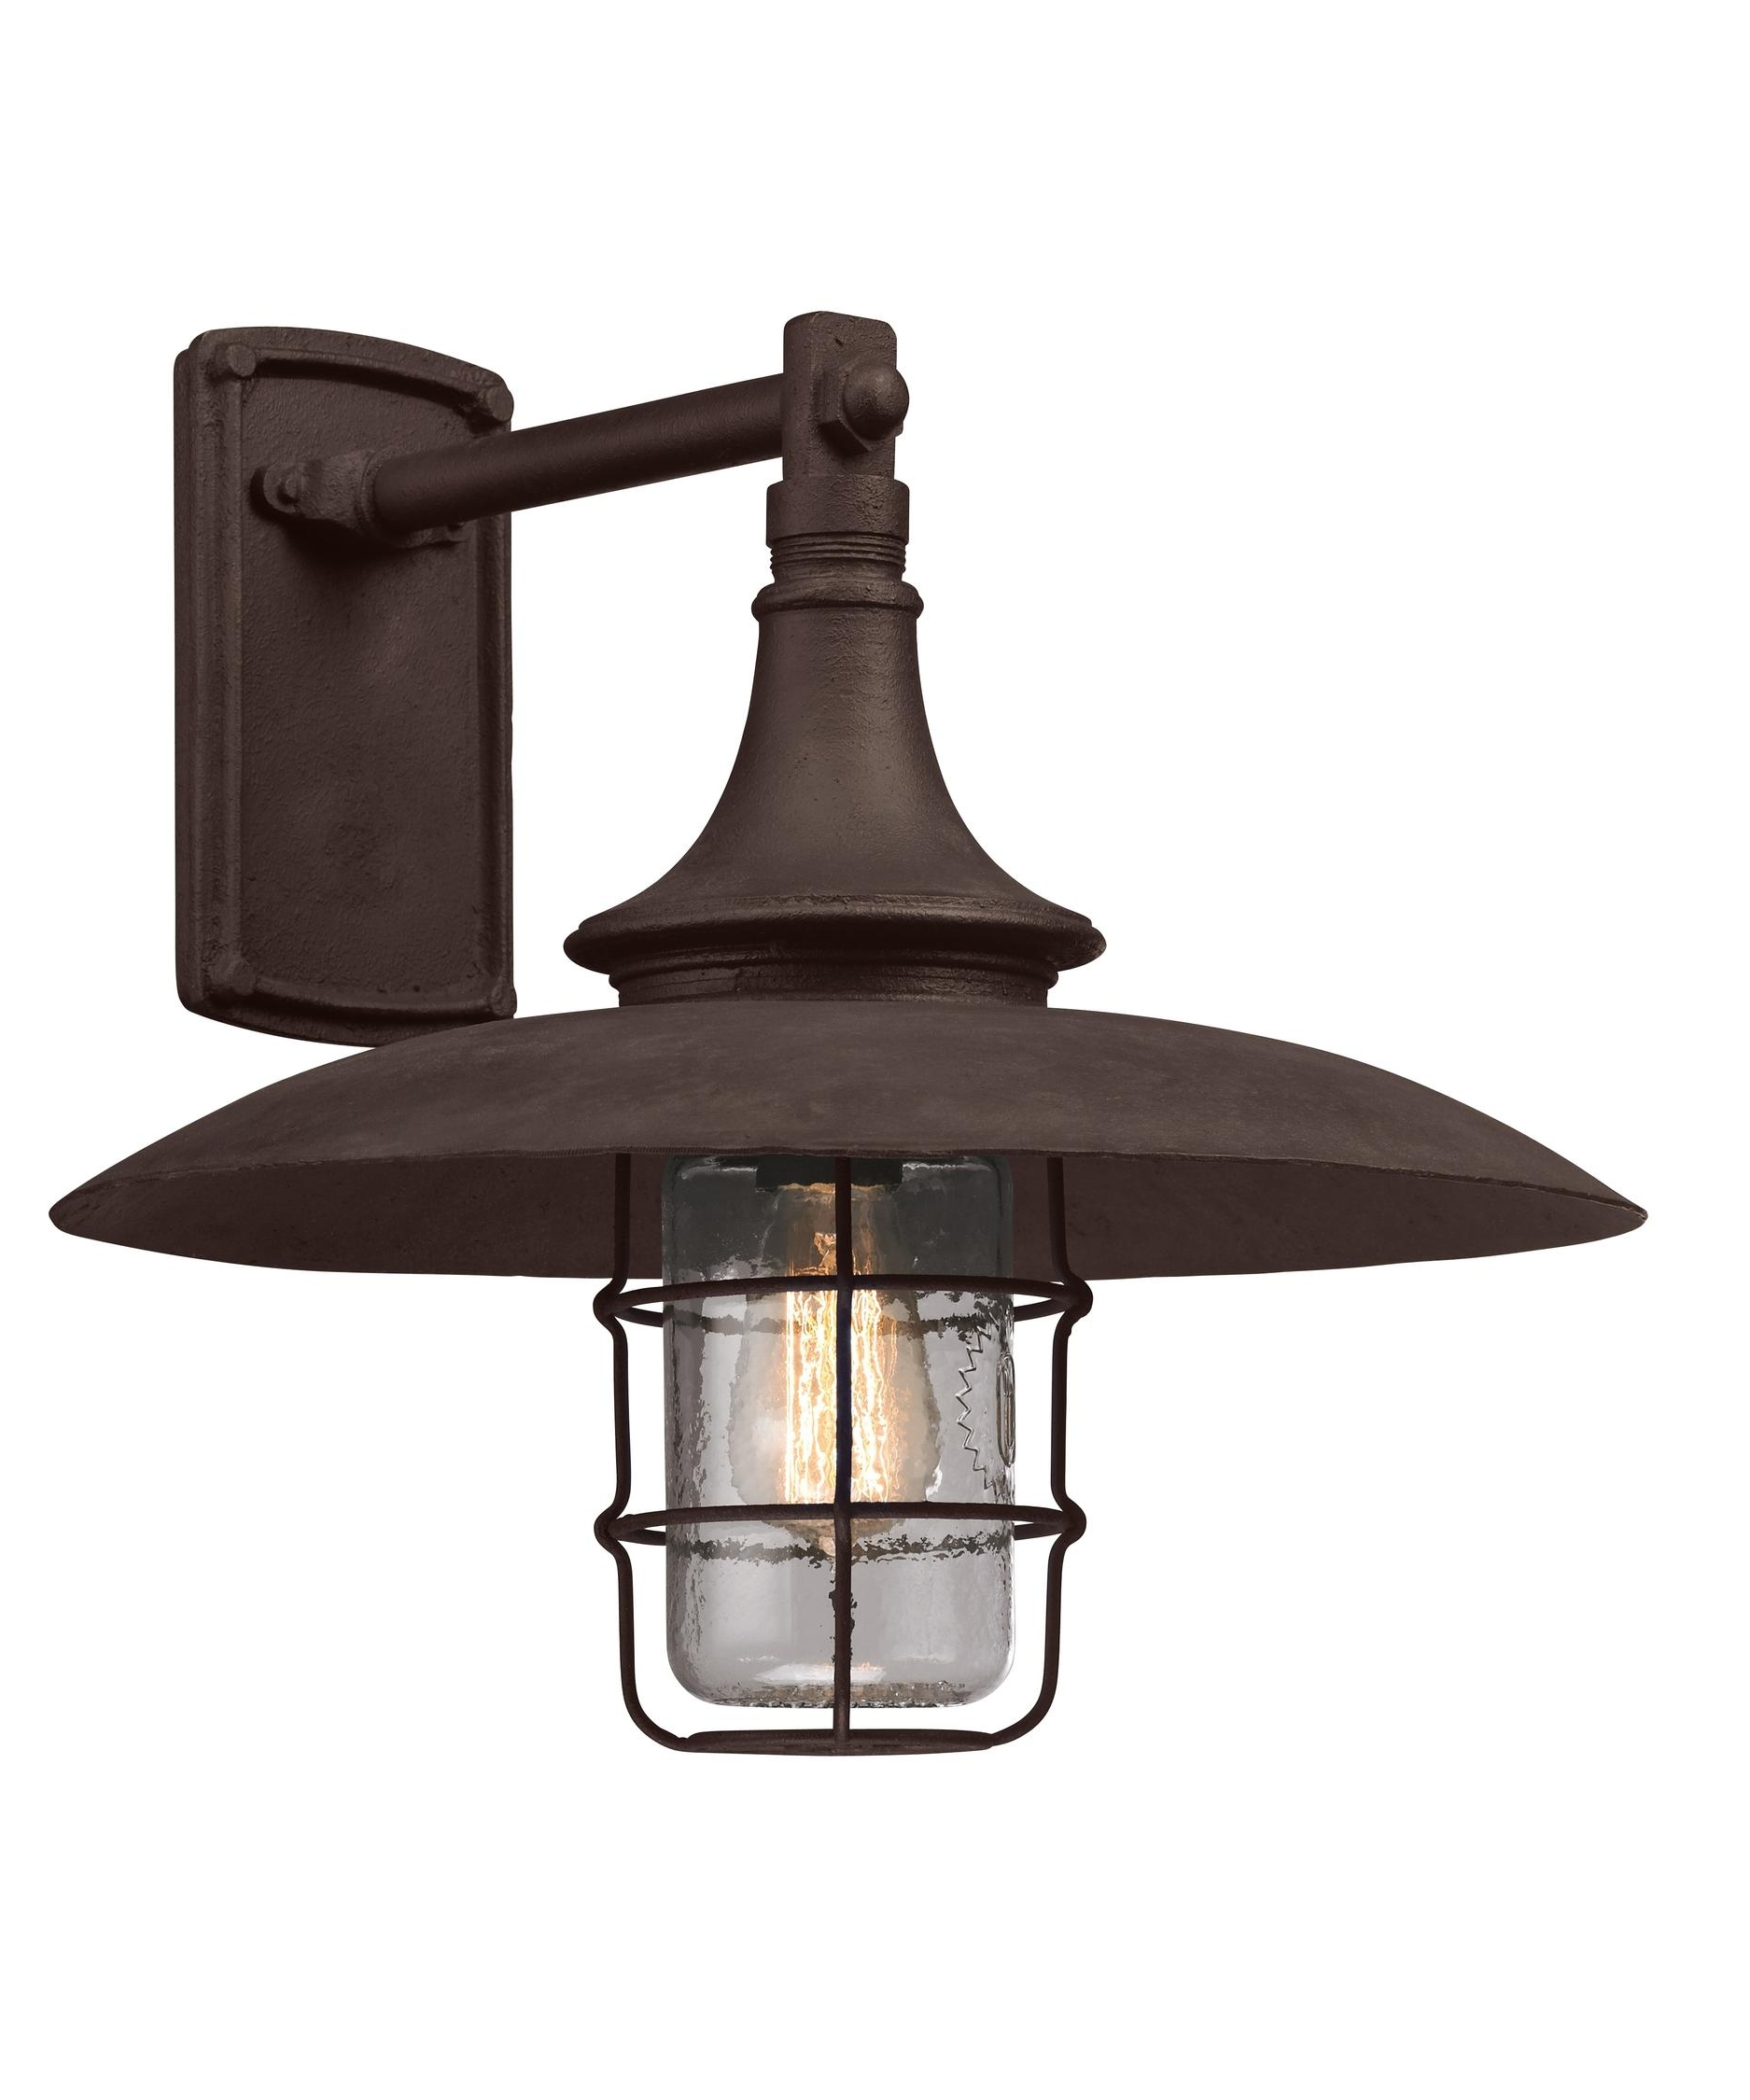 Troy Lighting B3222 Allegany 16 Inch Wide 1 Light Outdoor Wall Light Inside Most Popular Antique Outdoor Wall Lights (View 7 of 20)